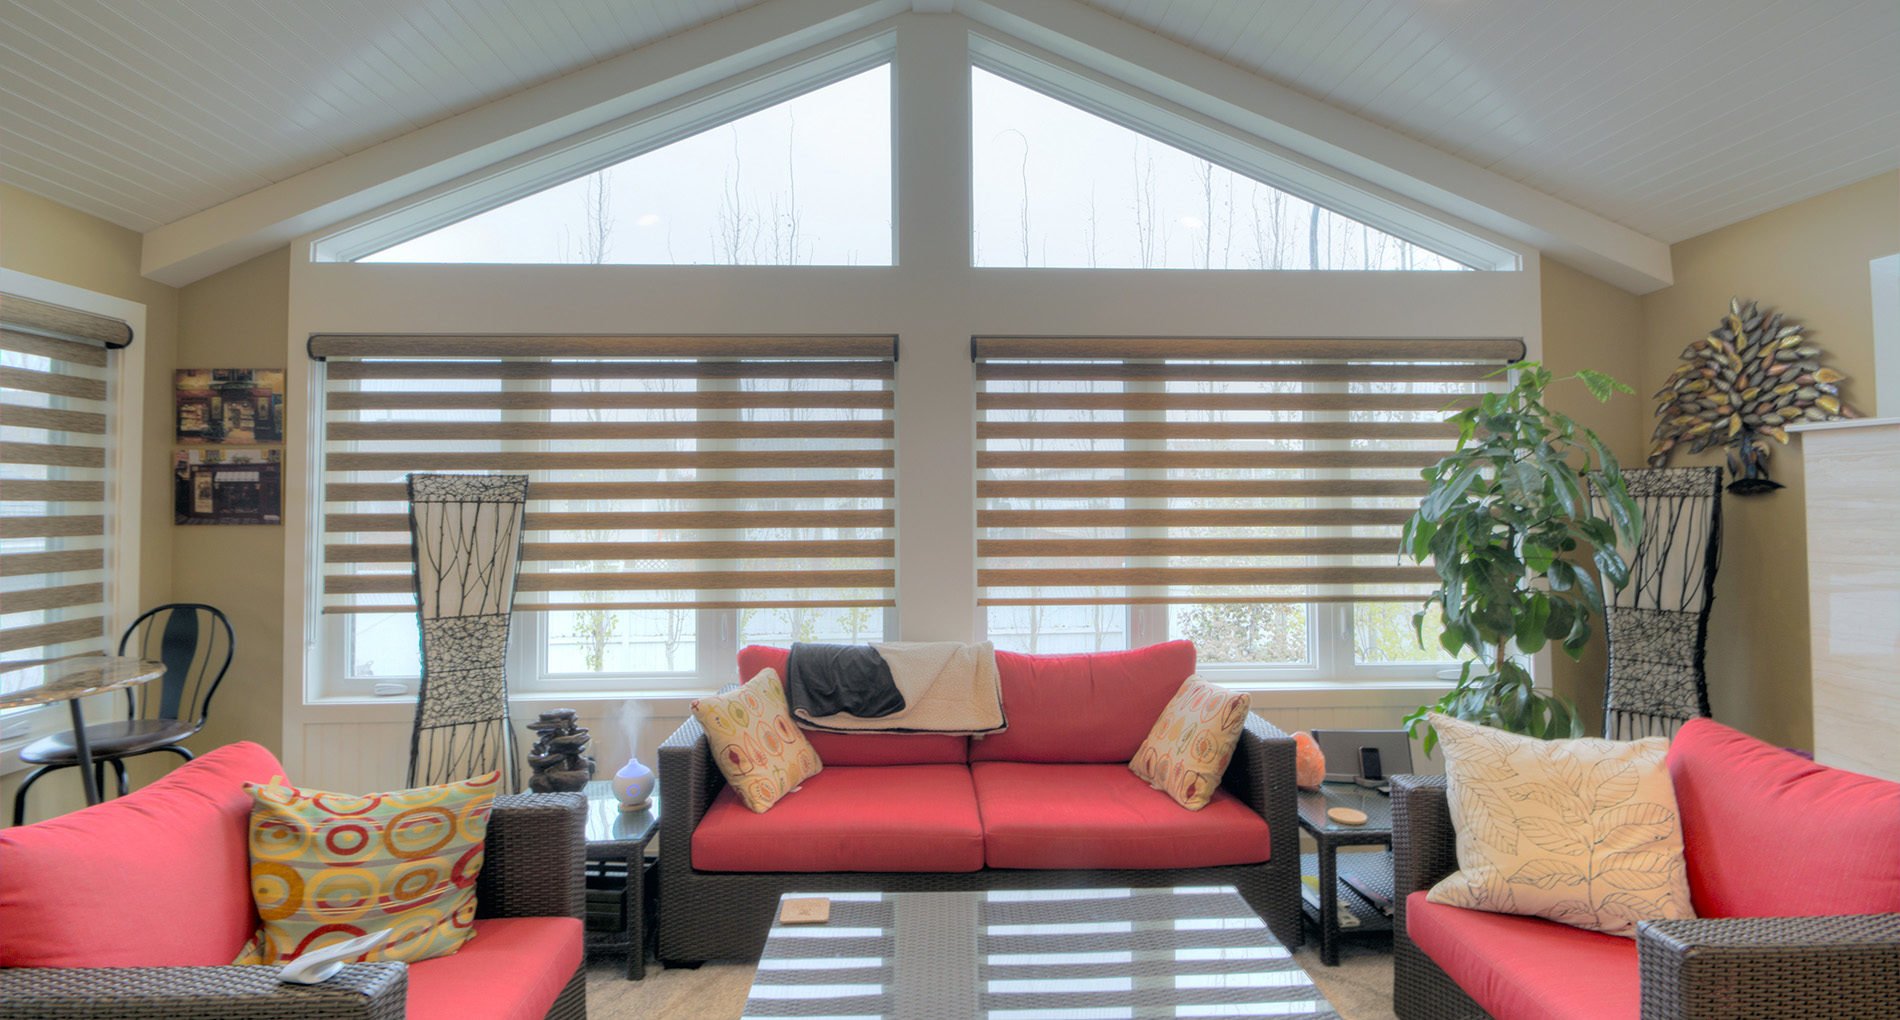 Home Renovation Reddeer Sunroom Slider